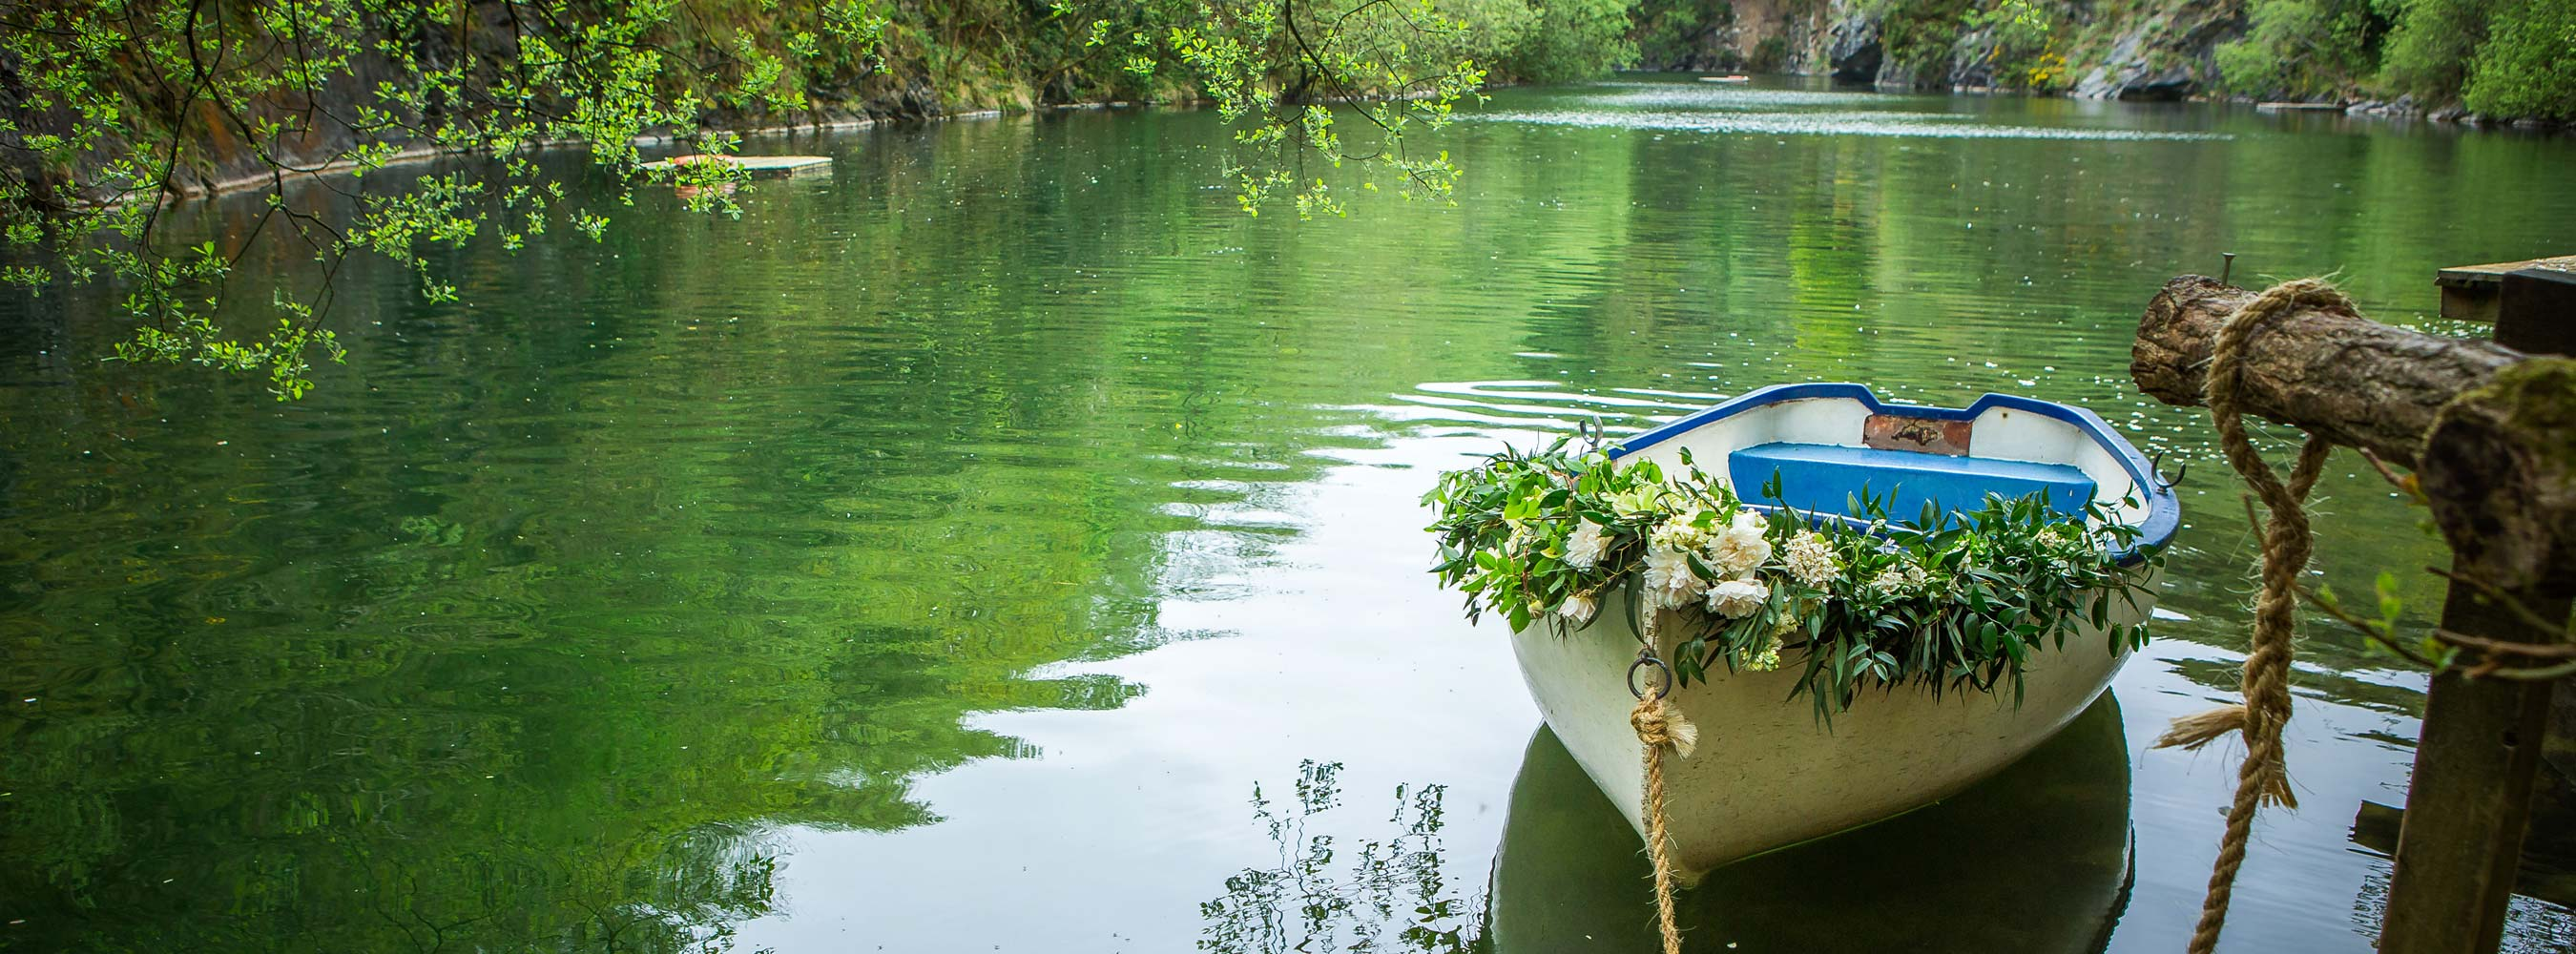 Decorated Boat with flowers at lake